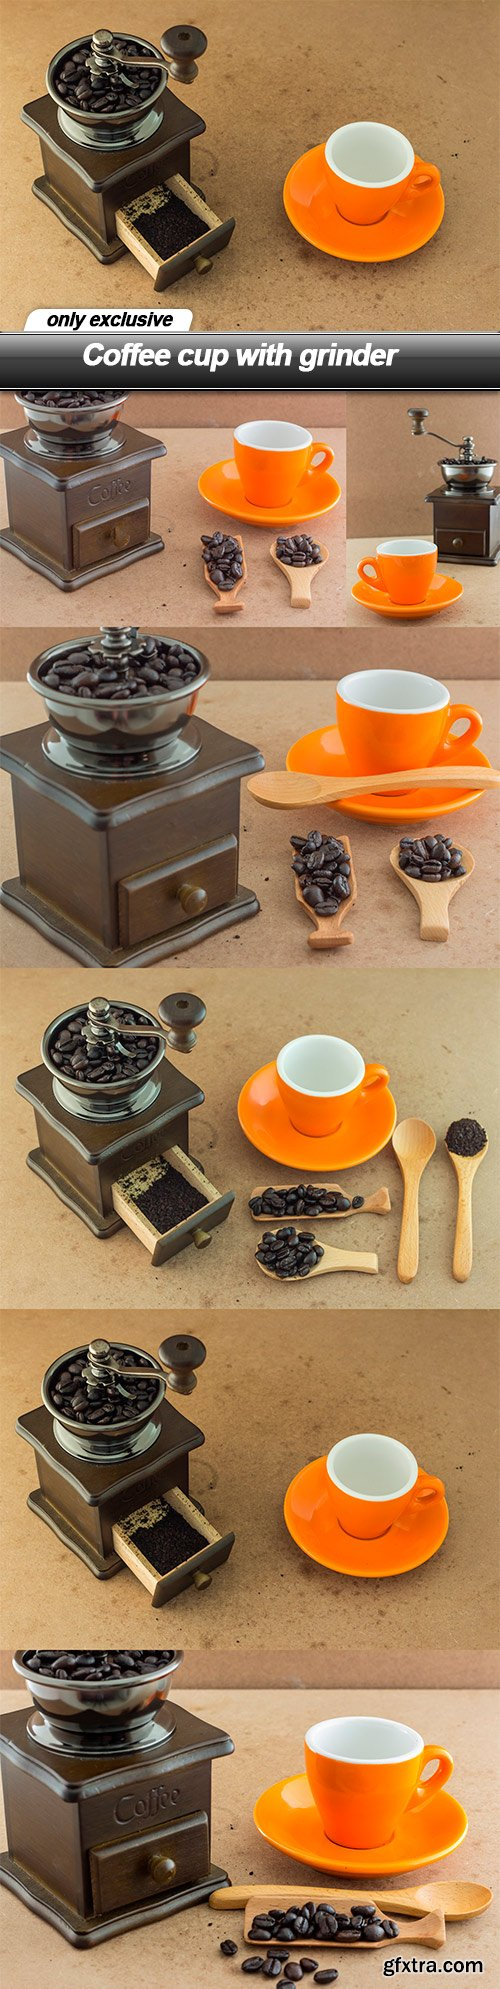 Coffee cup with grinder - 7 UHQ JPEG